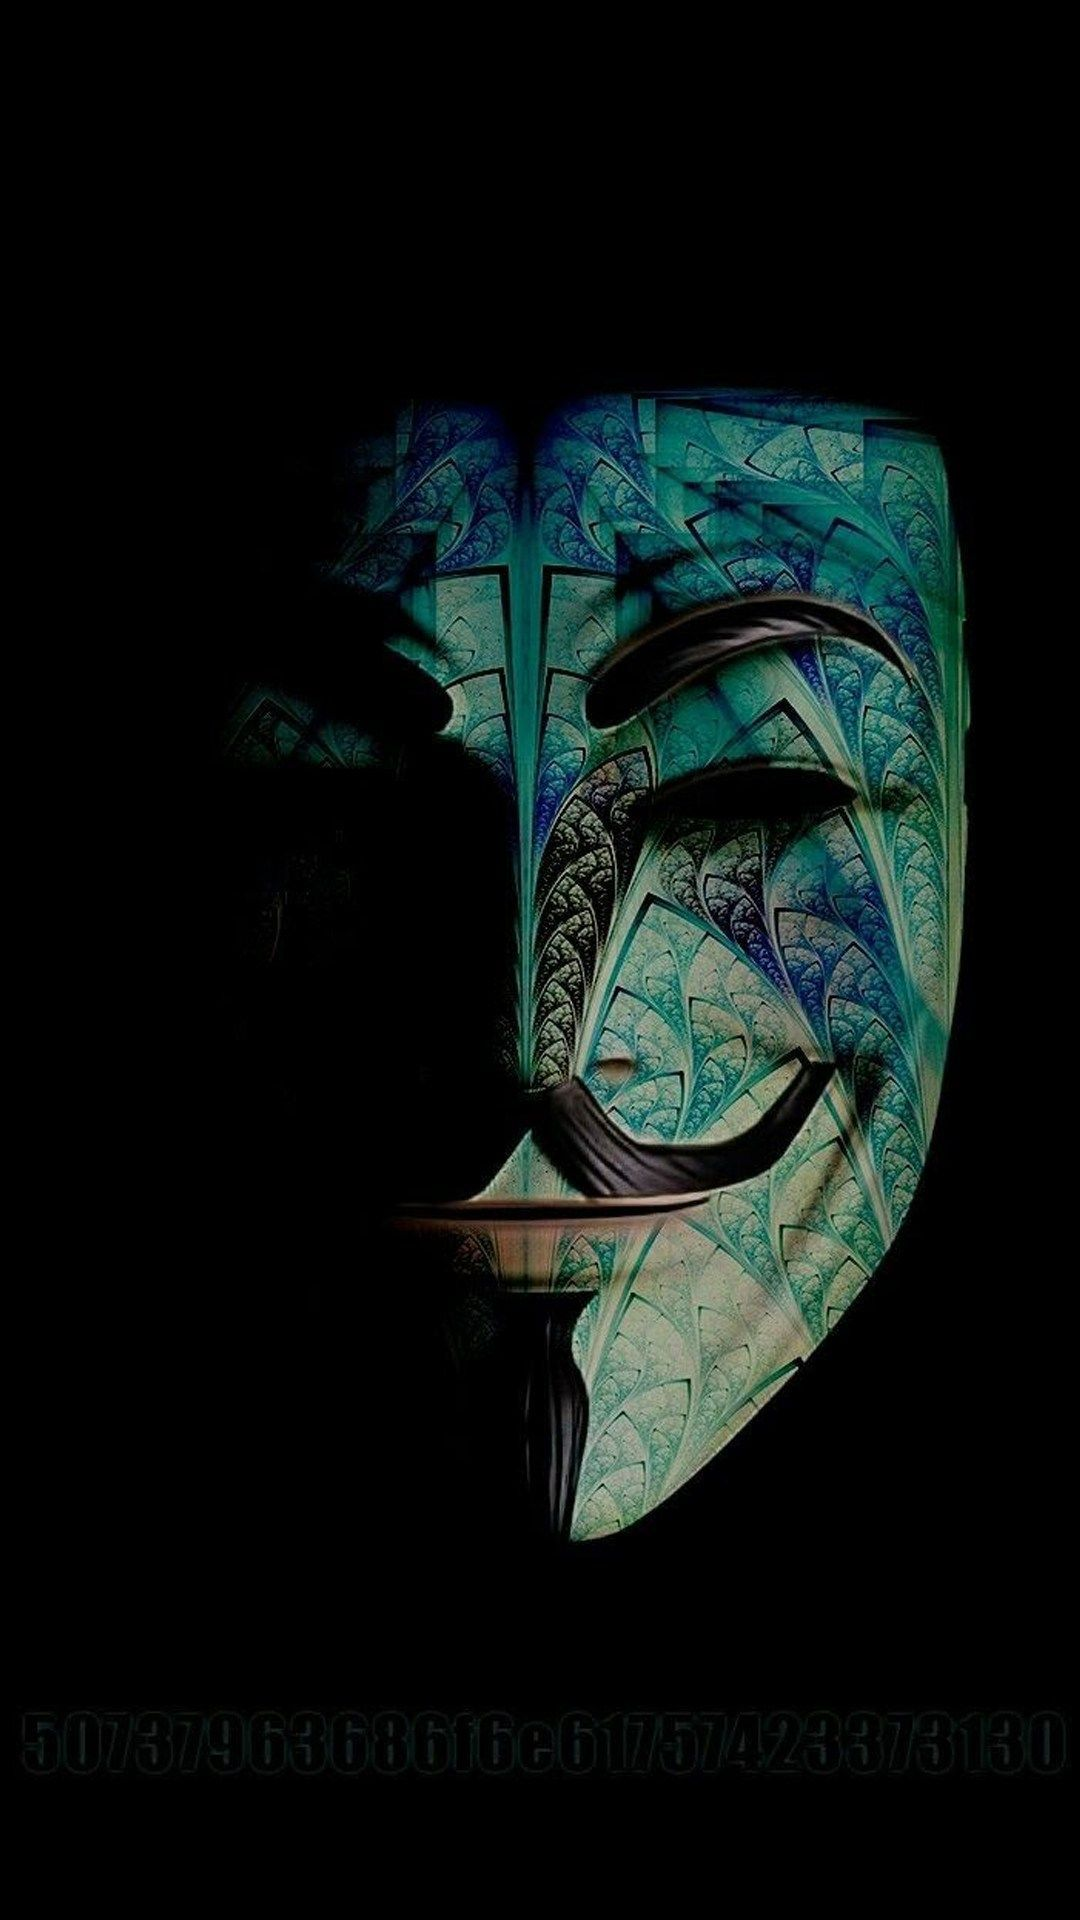 Badass Wallpapers For Android 38 0f 40 Custom Anonymous Mask In 2020 Iphone Wallpaper For Guys Anonymous Mask Badass Wallpaper Iphone